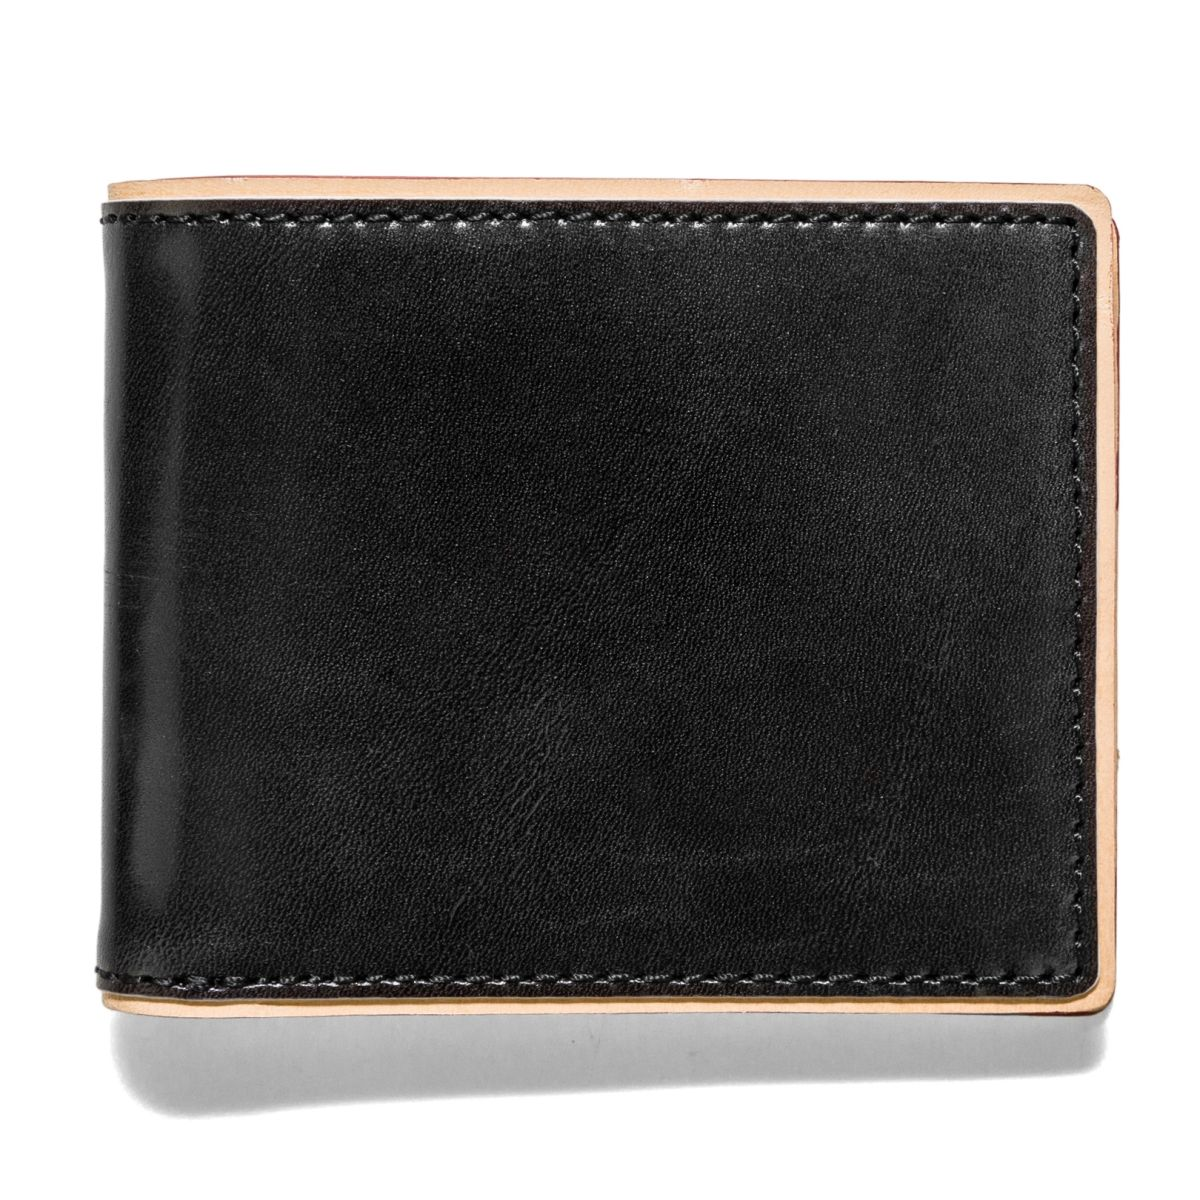 DUOTONE Leather Wallet - Black